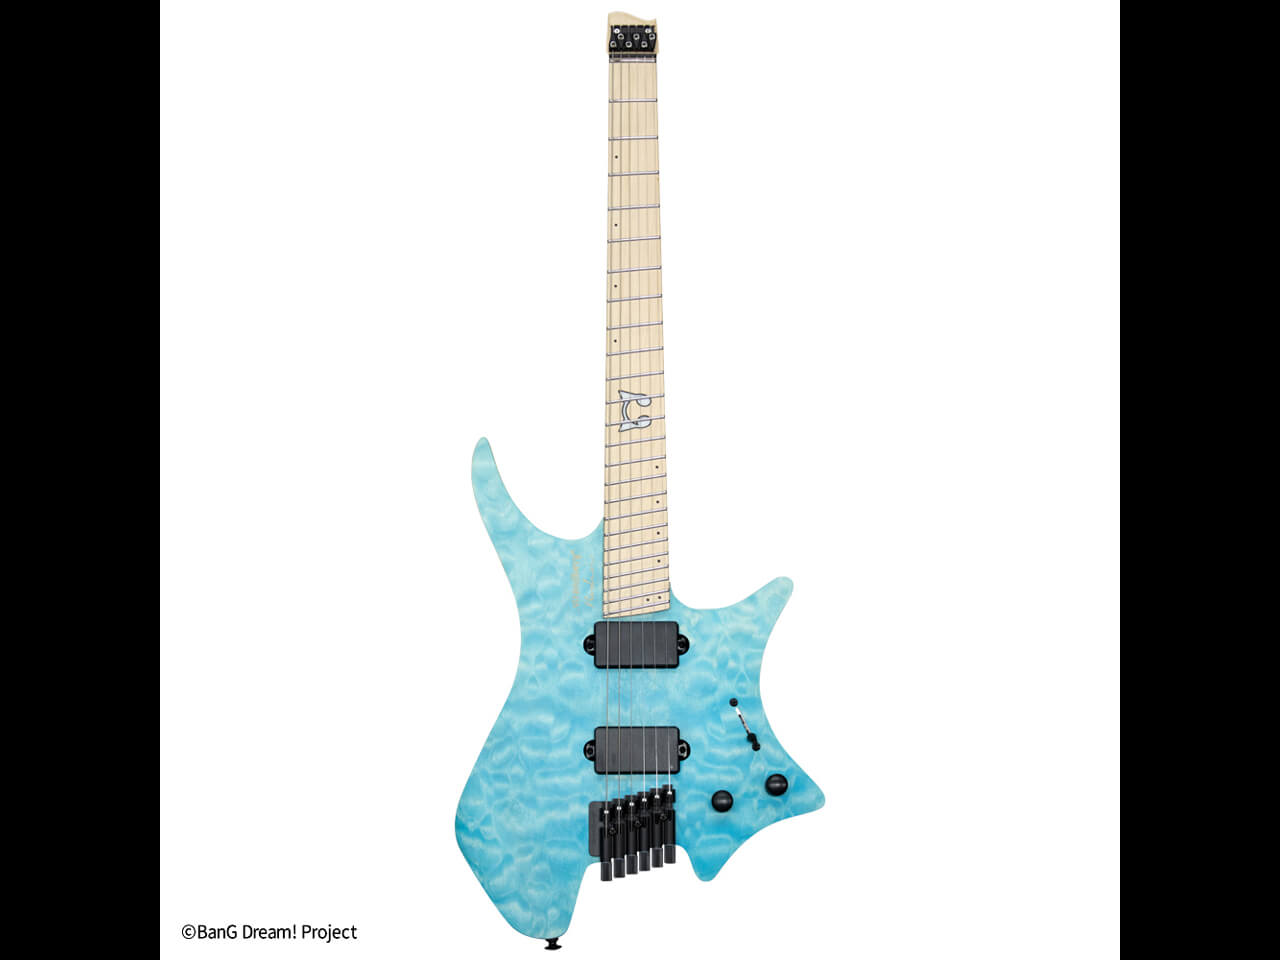 【BanG Dream! RAISE A SUILEN×strandberg コラボレーション】strandberg Boden RAS 6 (BanG Dream! RAISE A SUILEN - LOCK モデル)【ご予約商品】